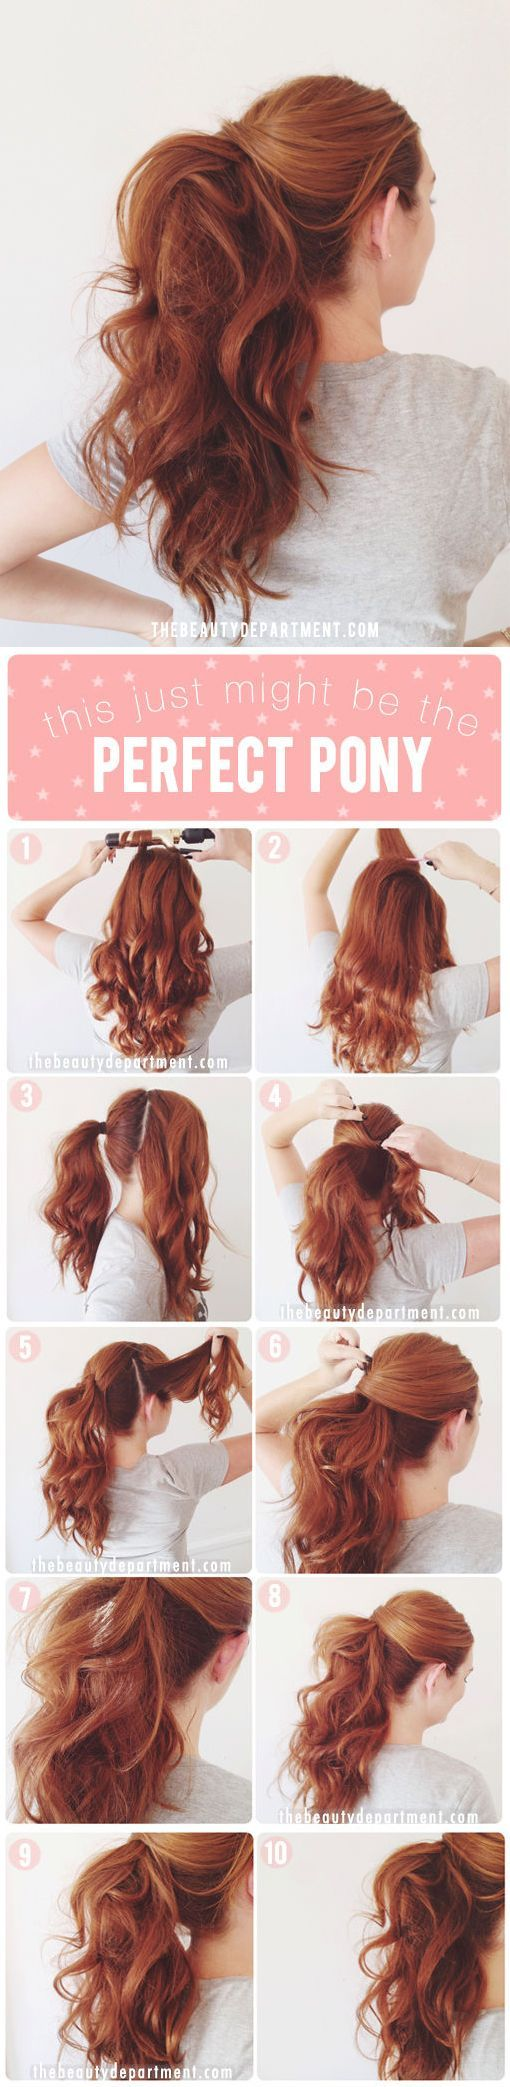 Pin by fie moll on frisurer pinterest ponytail lucy hale and